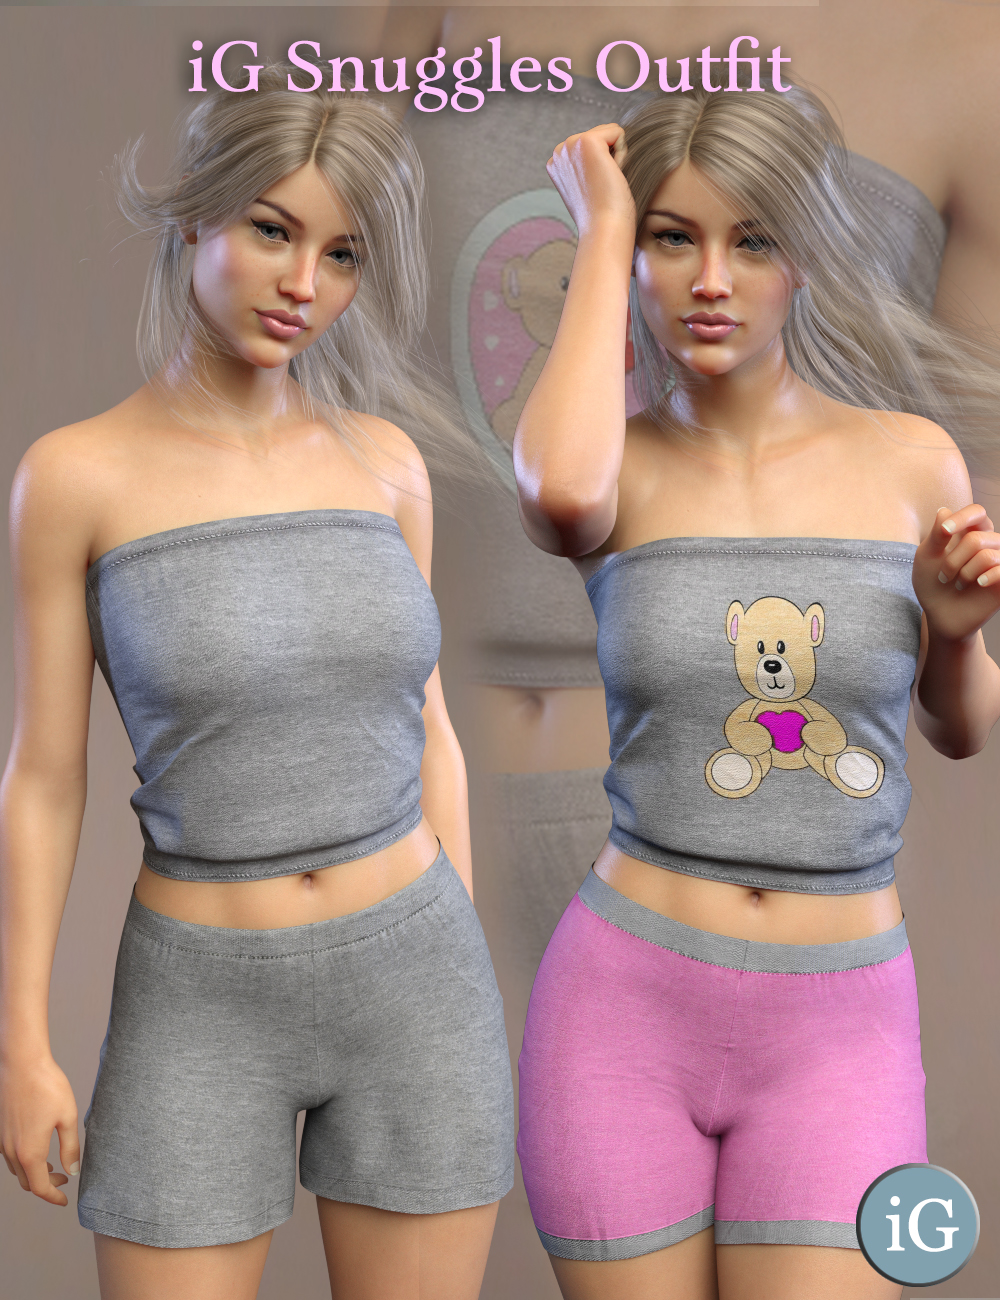 iG Snuggles Outfit For Genesis 8 Female(s) by: i3D_LotusValery3D, 3D Models by Daz 3D